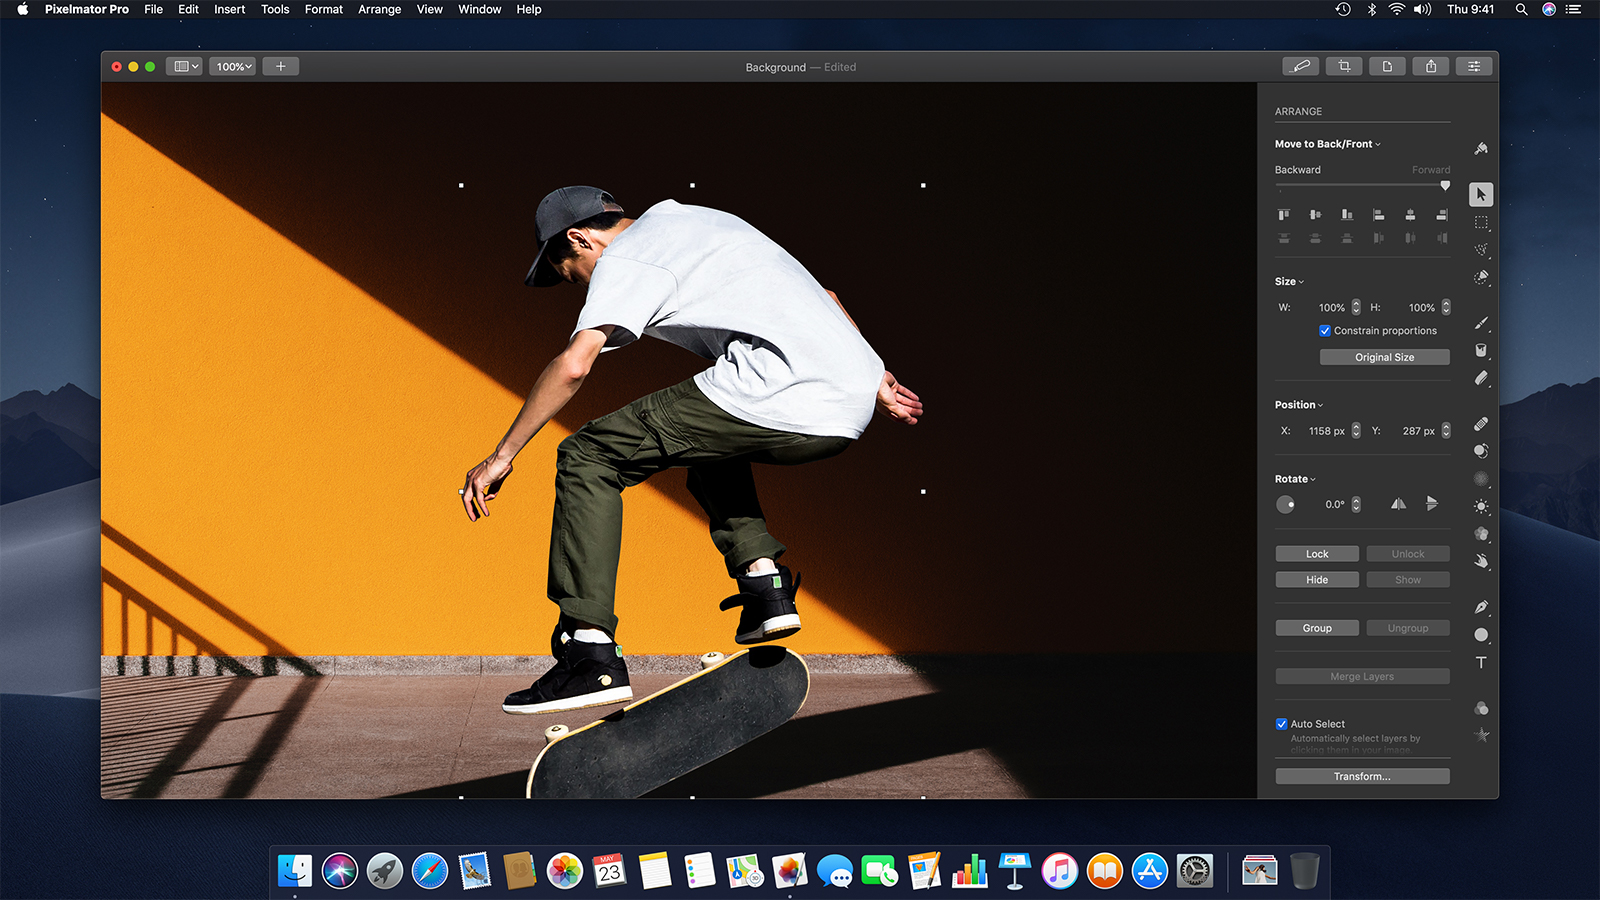 Copy an object from one image to another - Pixelmator Pro Tutorials